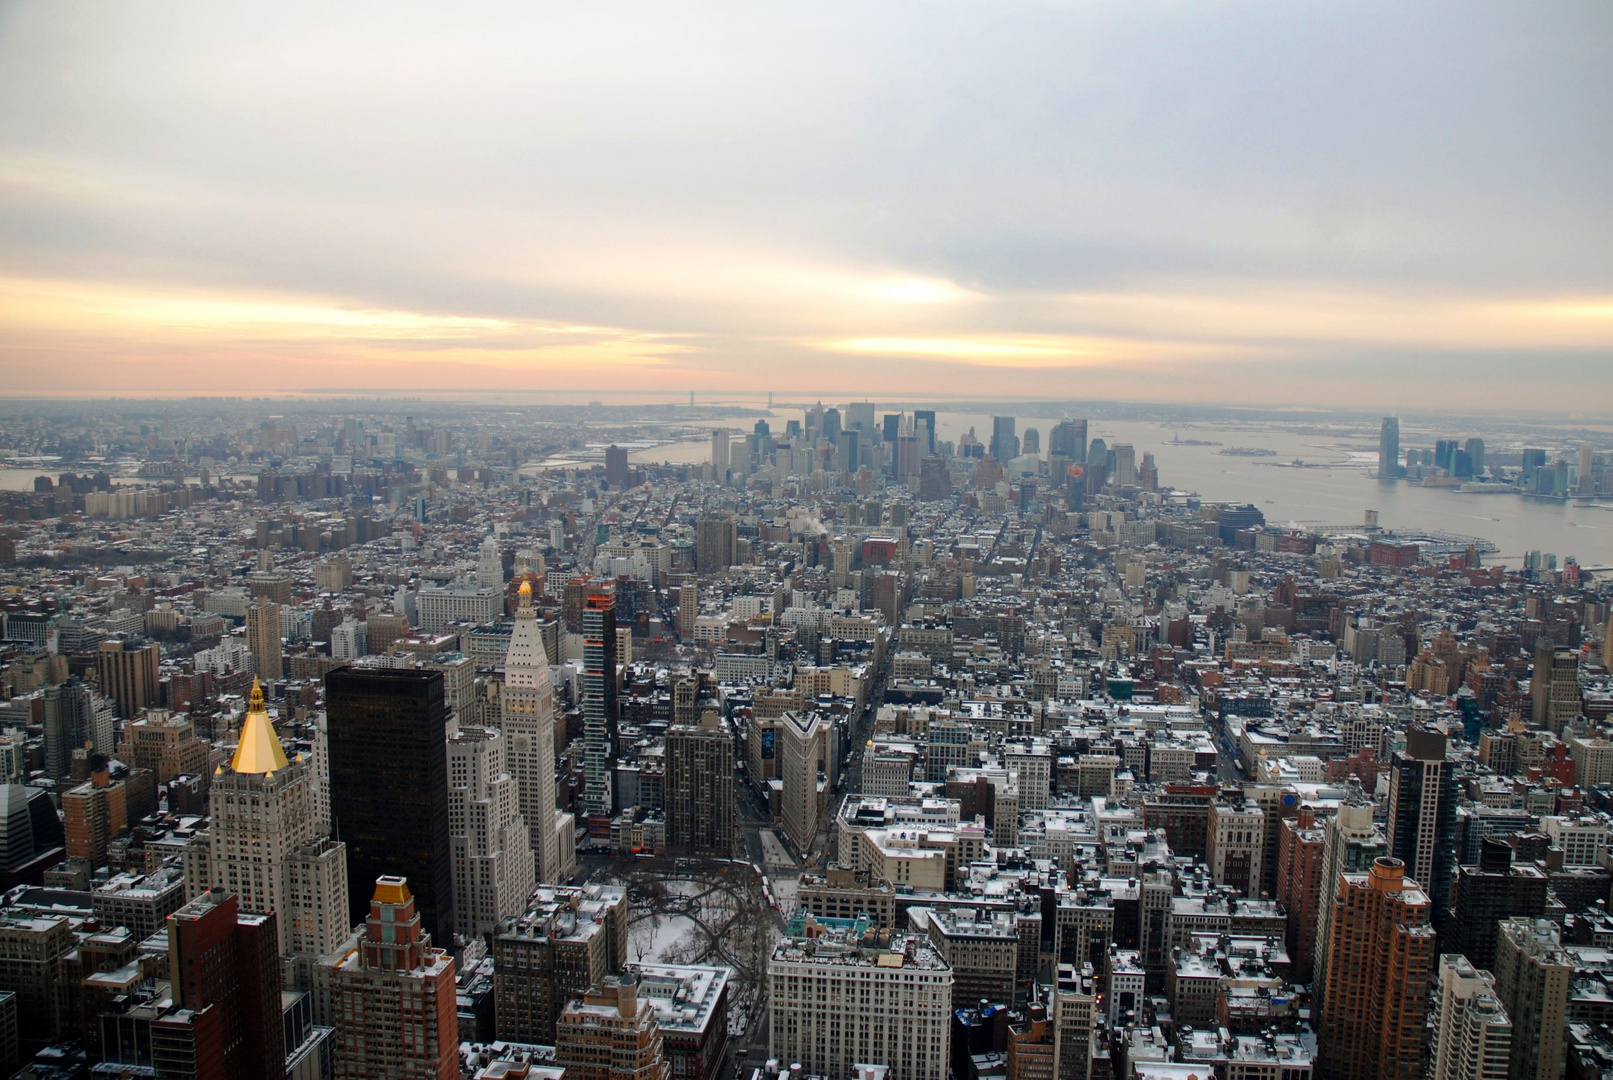 New-York from Empire State Building